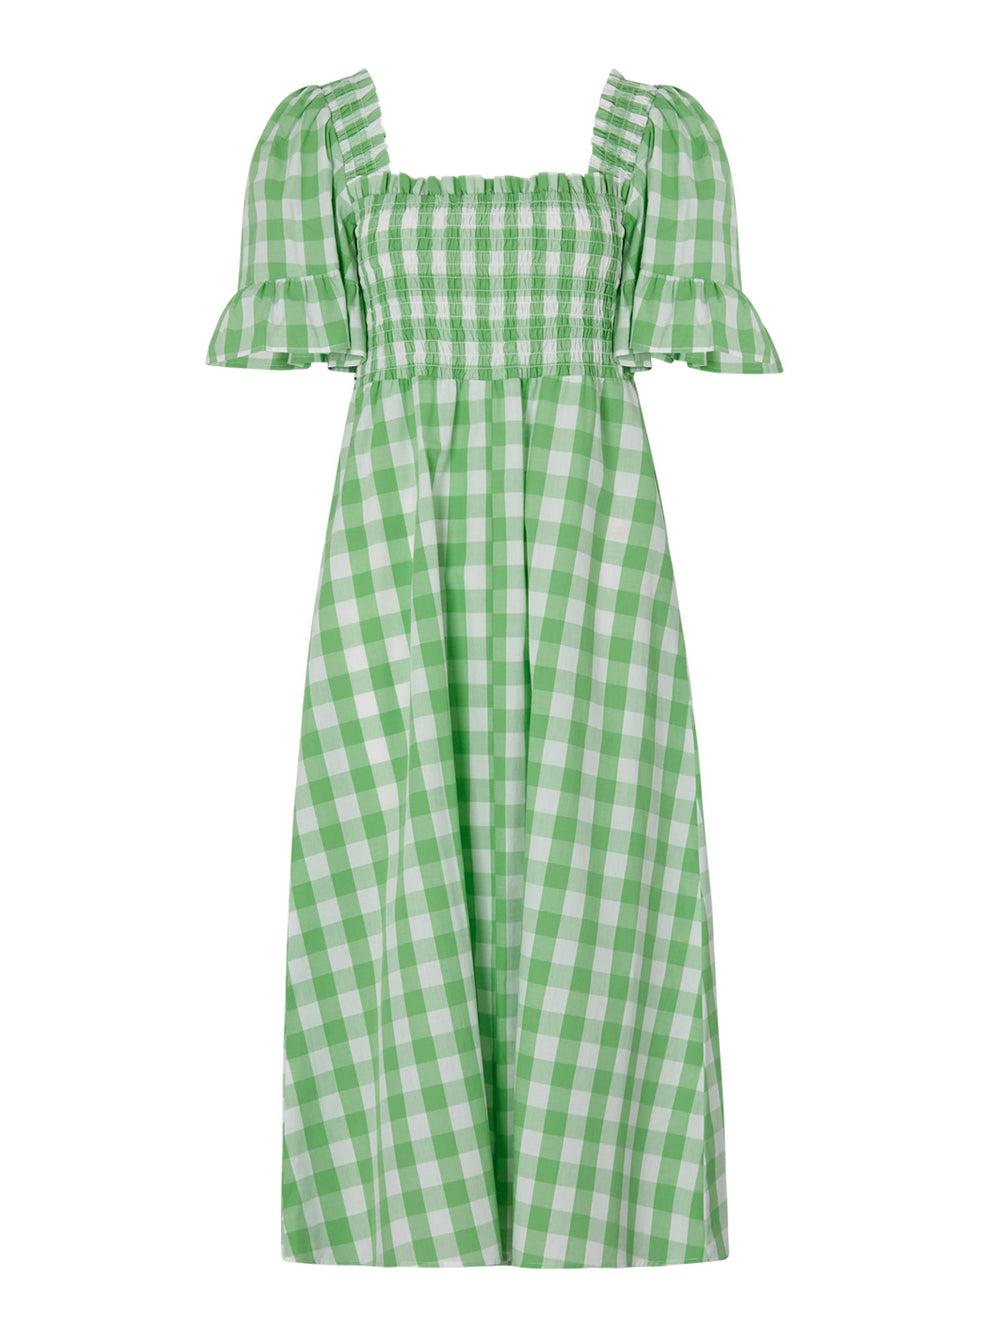 Arabella Green Gingham Shirred Dress by KITRI Studio